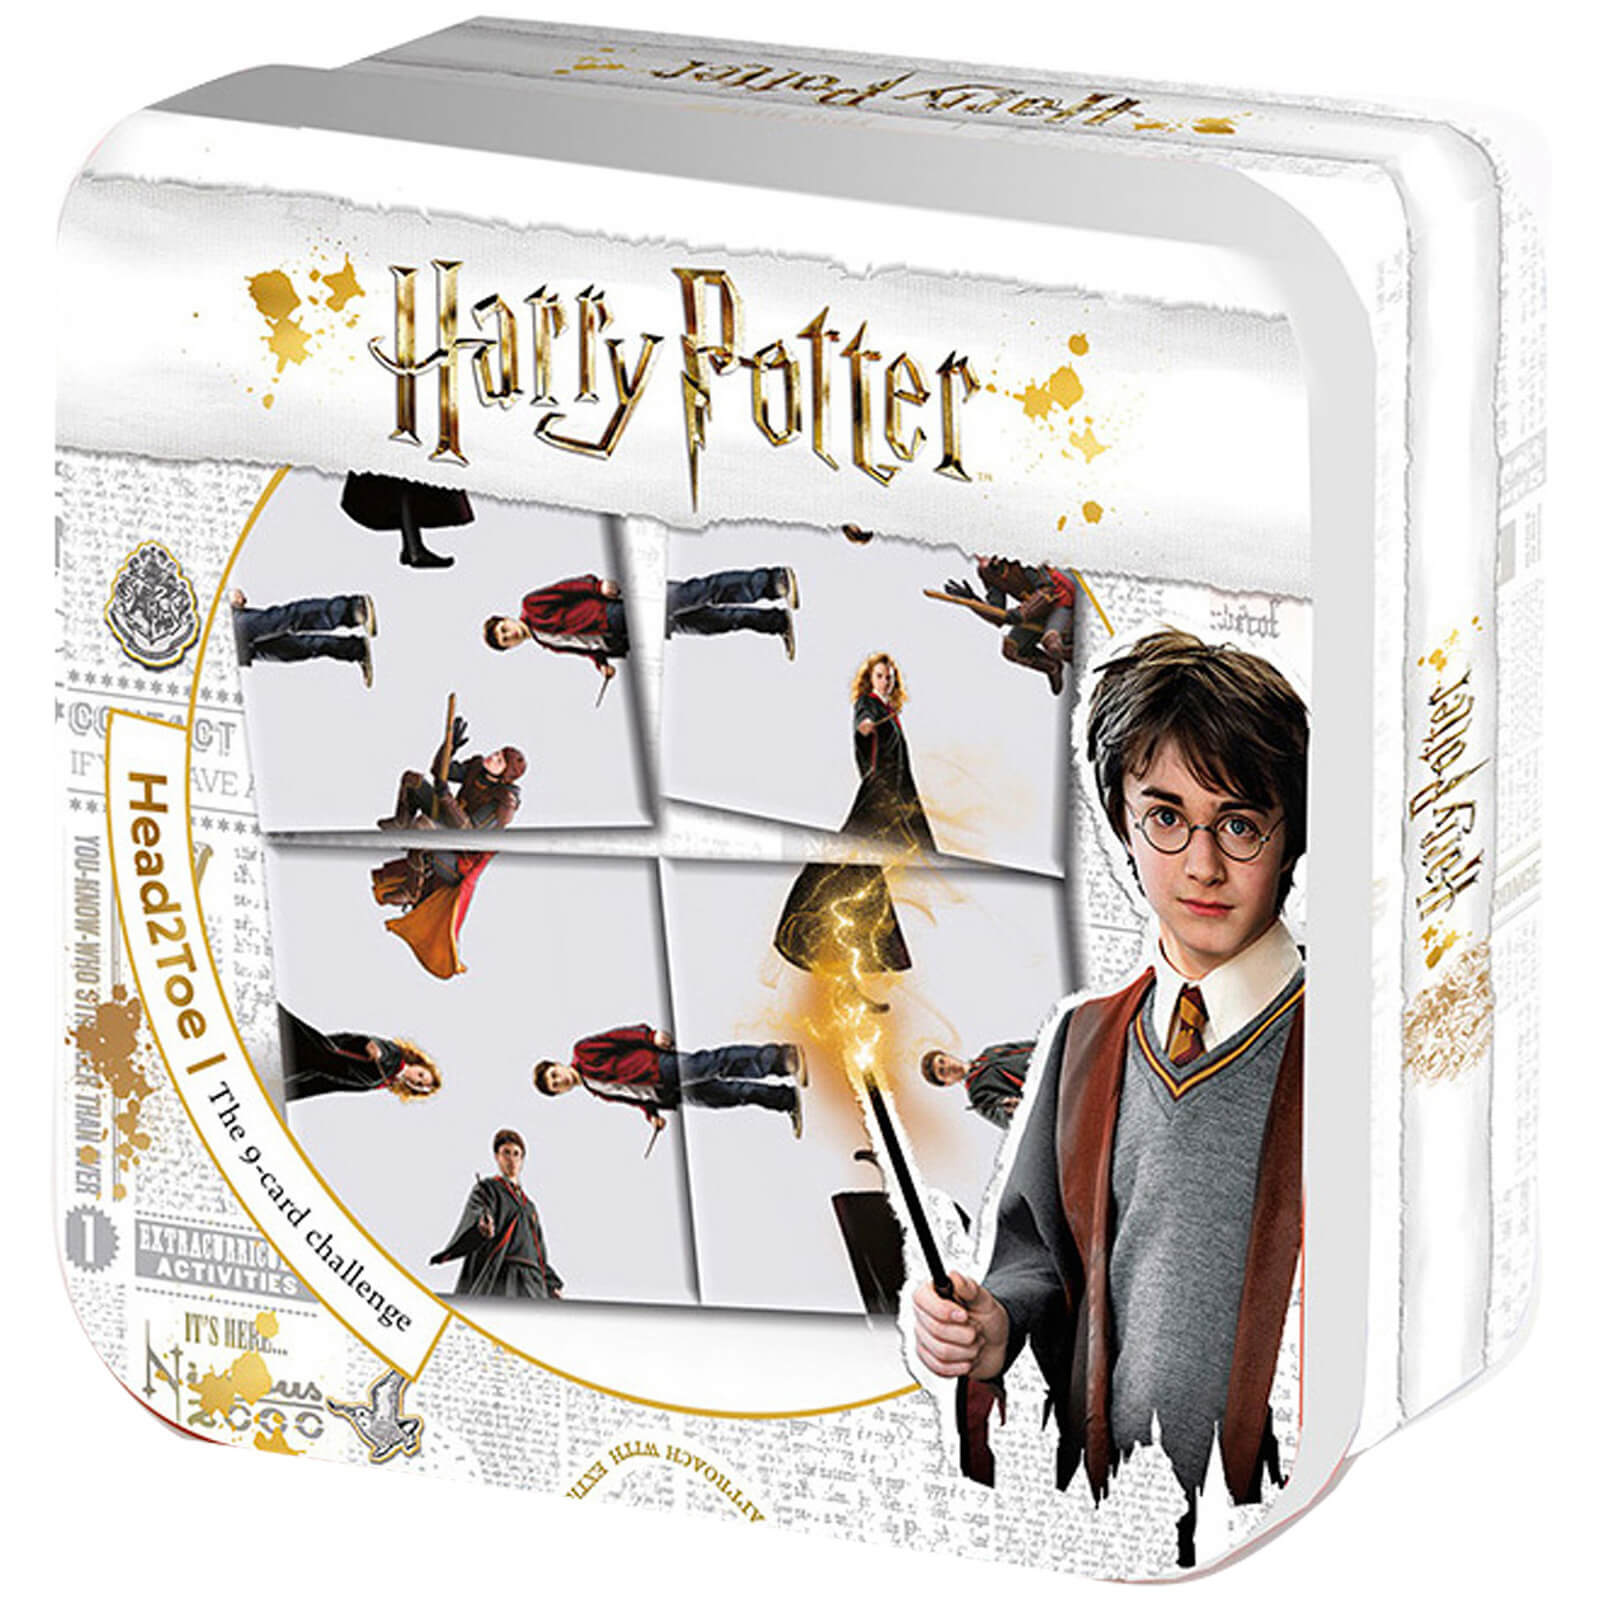 Image of Harry Potter and Friends Top 2 Toe Ultimate 9 Card Puzzle Challenge